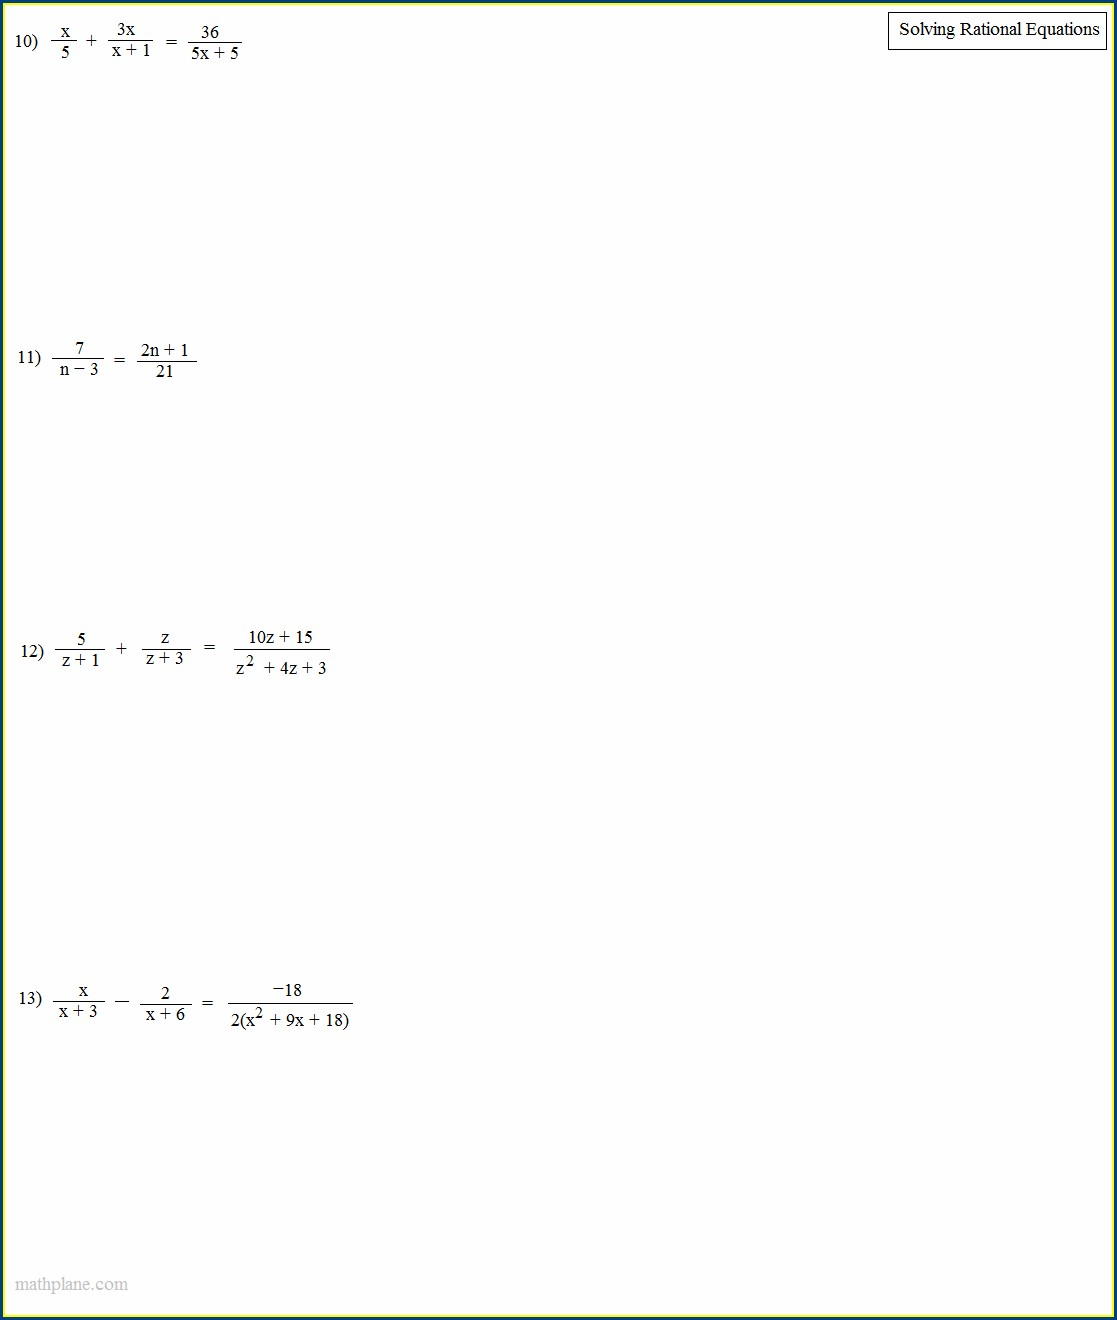 Solving Rational Equations Word Problems Worksheet